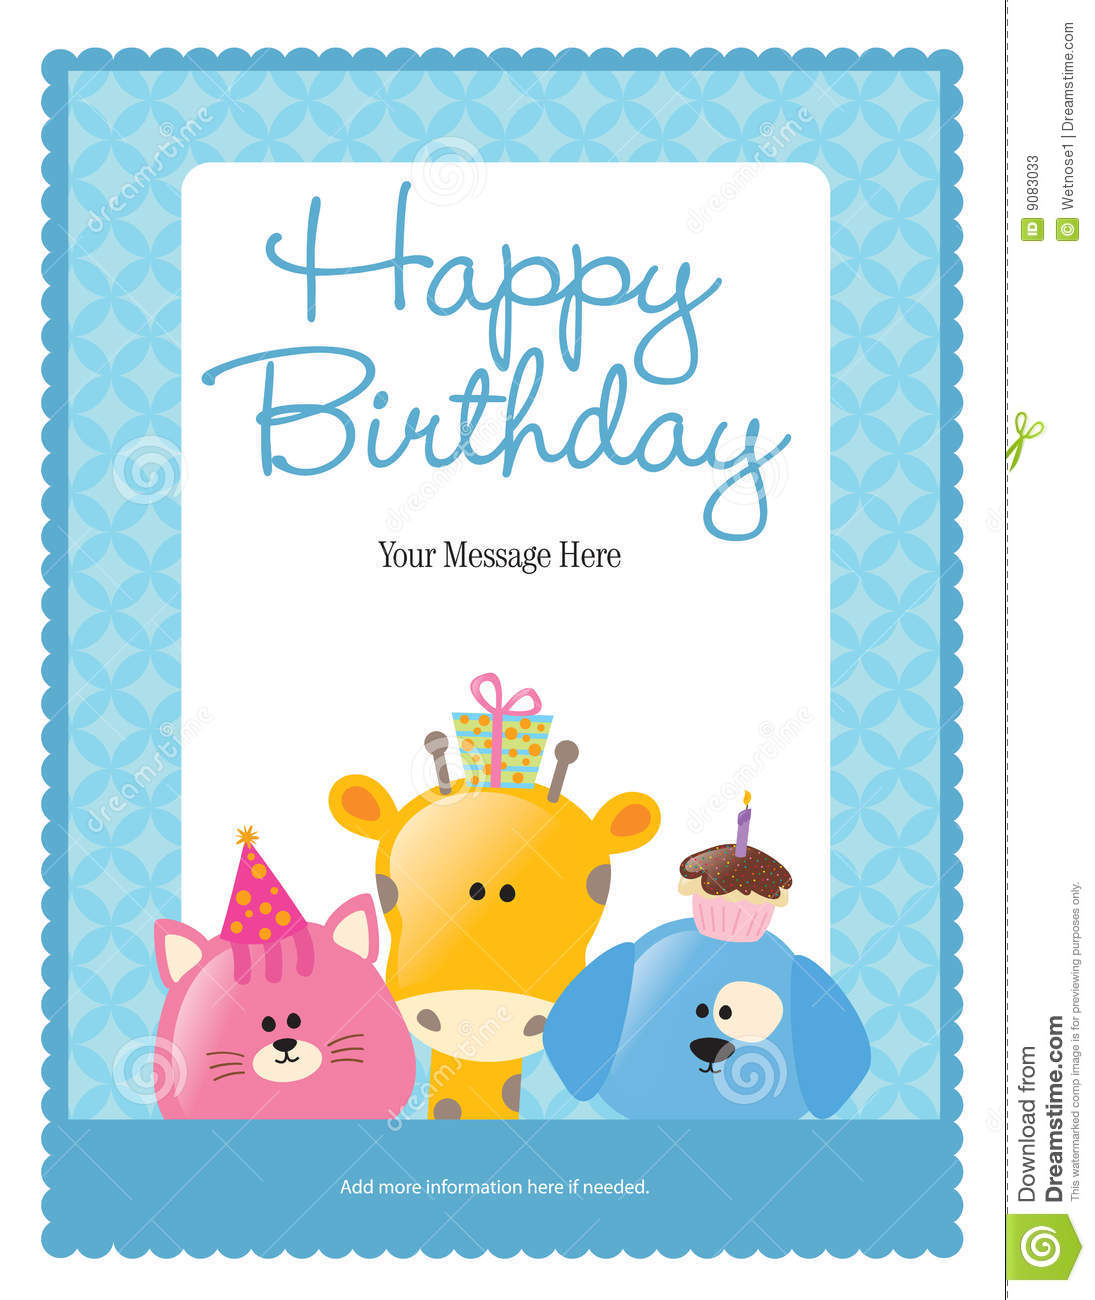 8 5x11 poster design - 8 5x11 Birthday Flyer Poster Template Stock Photos